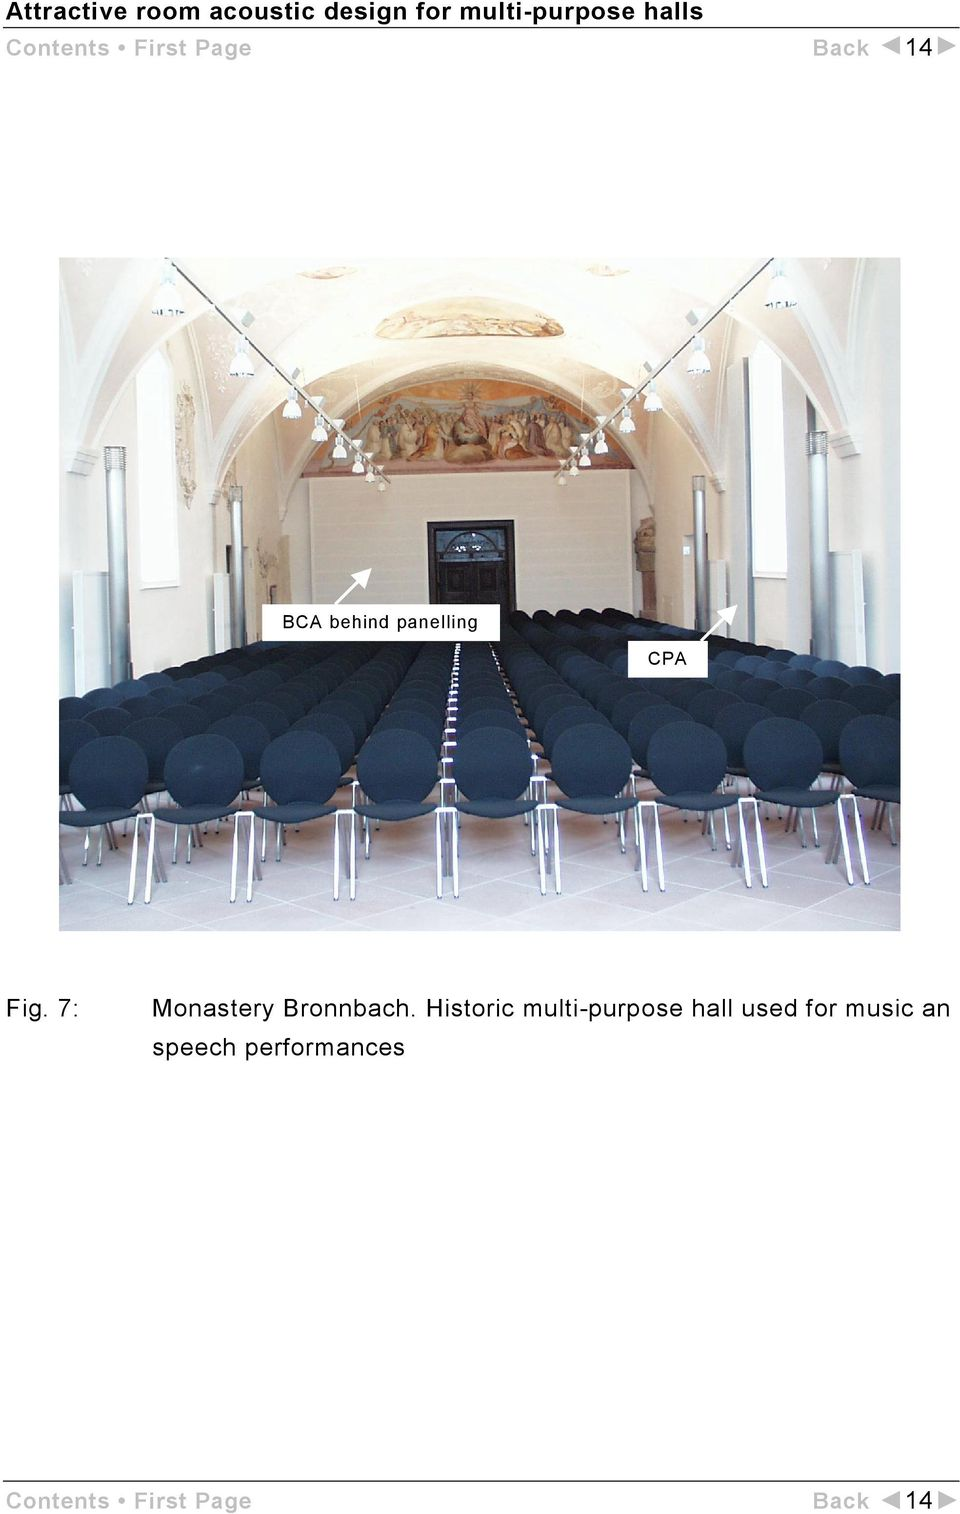 Historic multi-purpose hall used for music